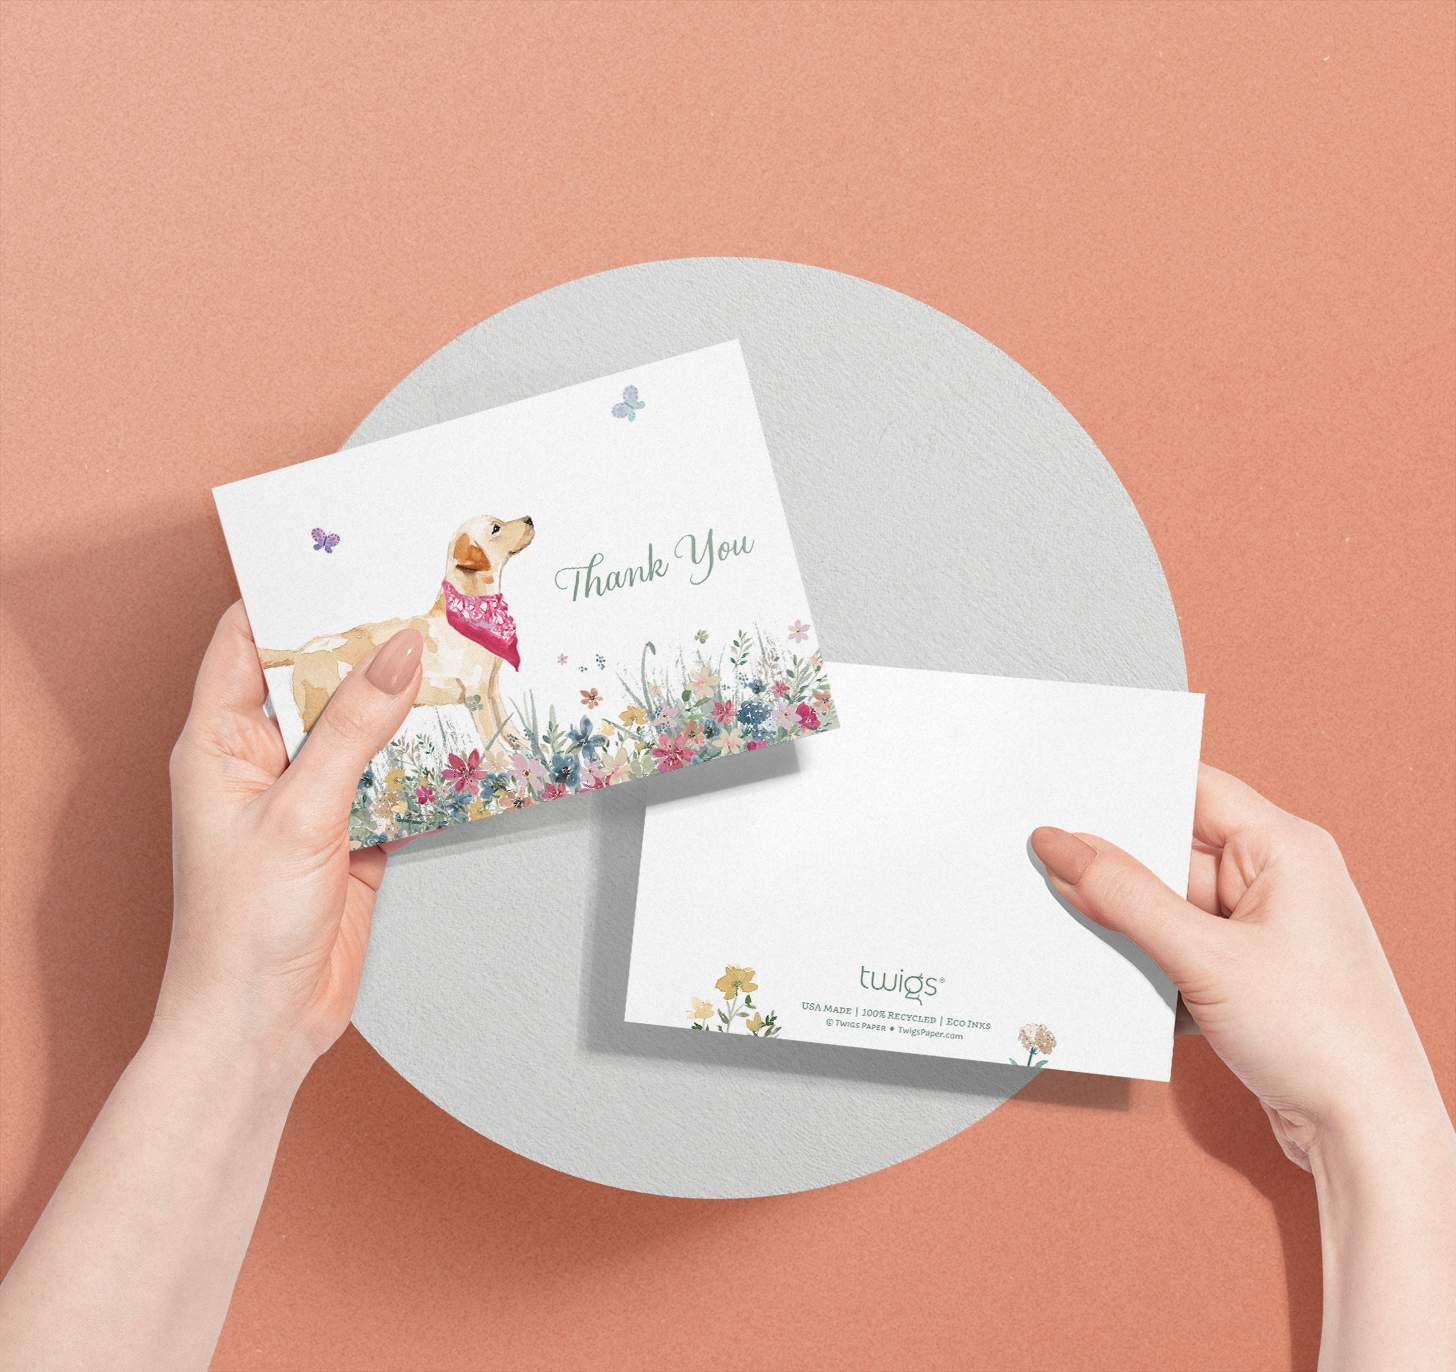 Woman's hands holding card with golden Labrador design